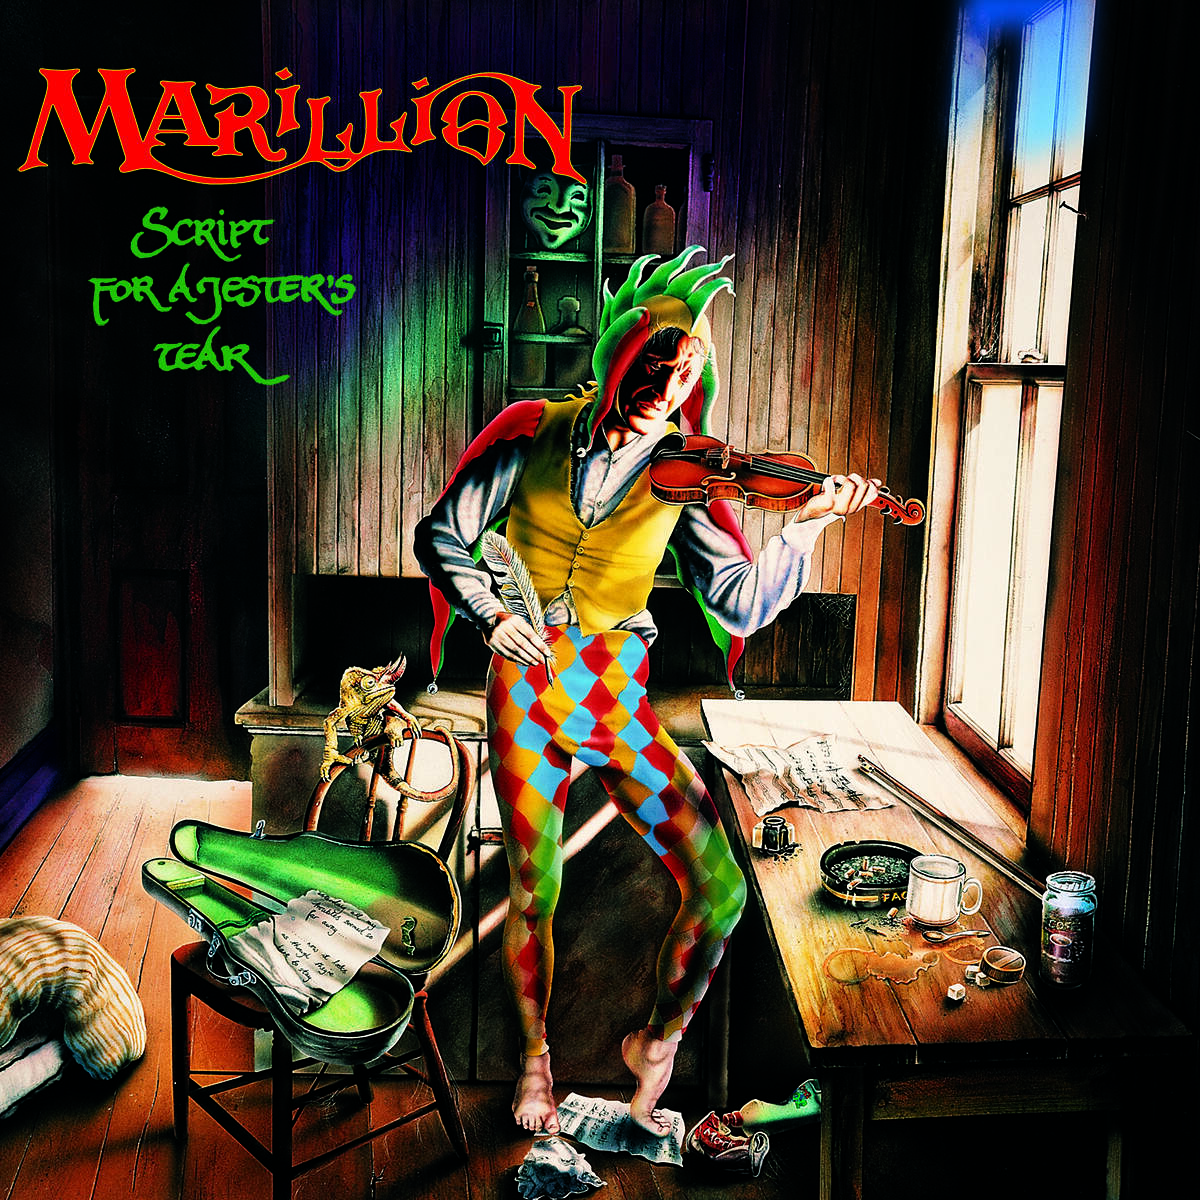 Marillion - A Script for a Jester's Tear